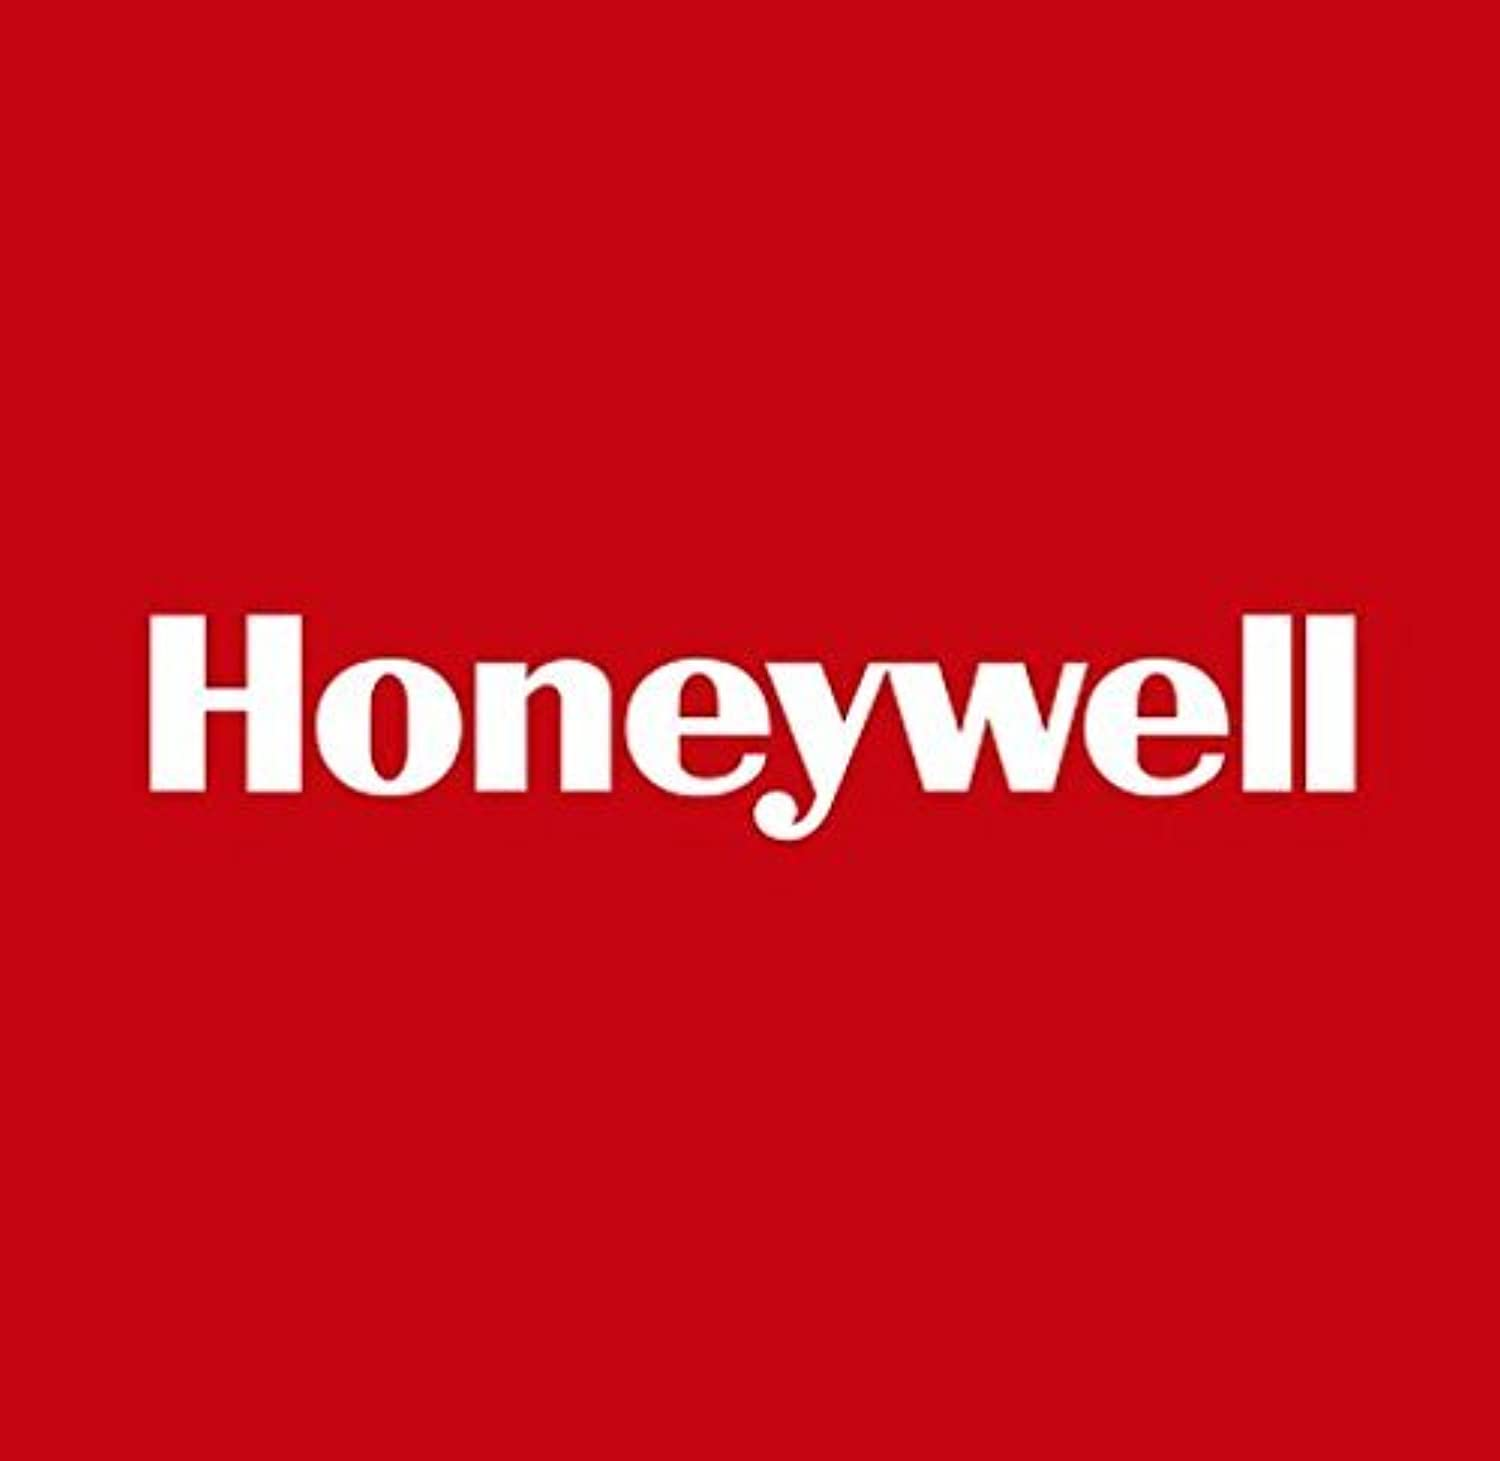 Honeywell HWC-END CAP AUDIO End Cap for Use with Dolphin 70E Mobile Computer, Audio, Black